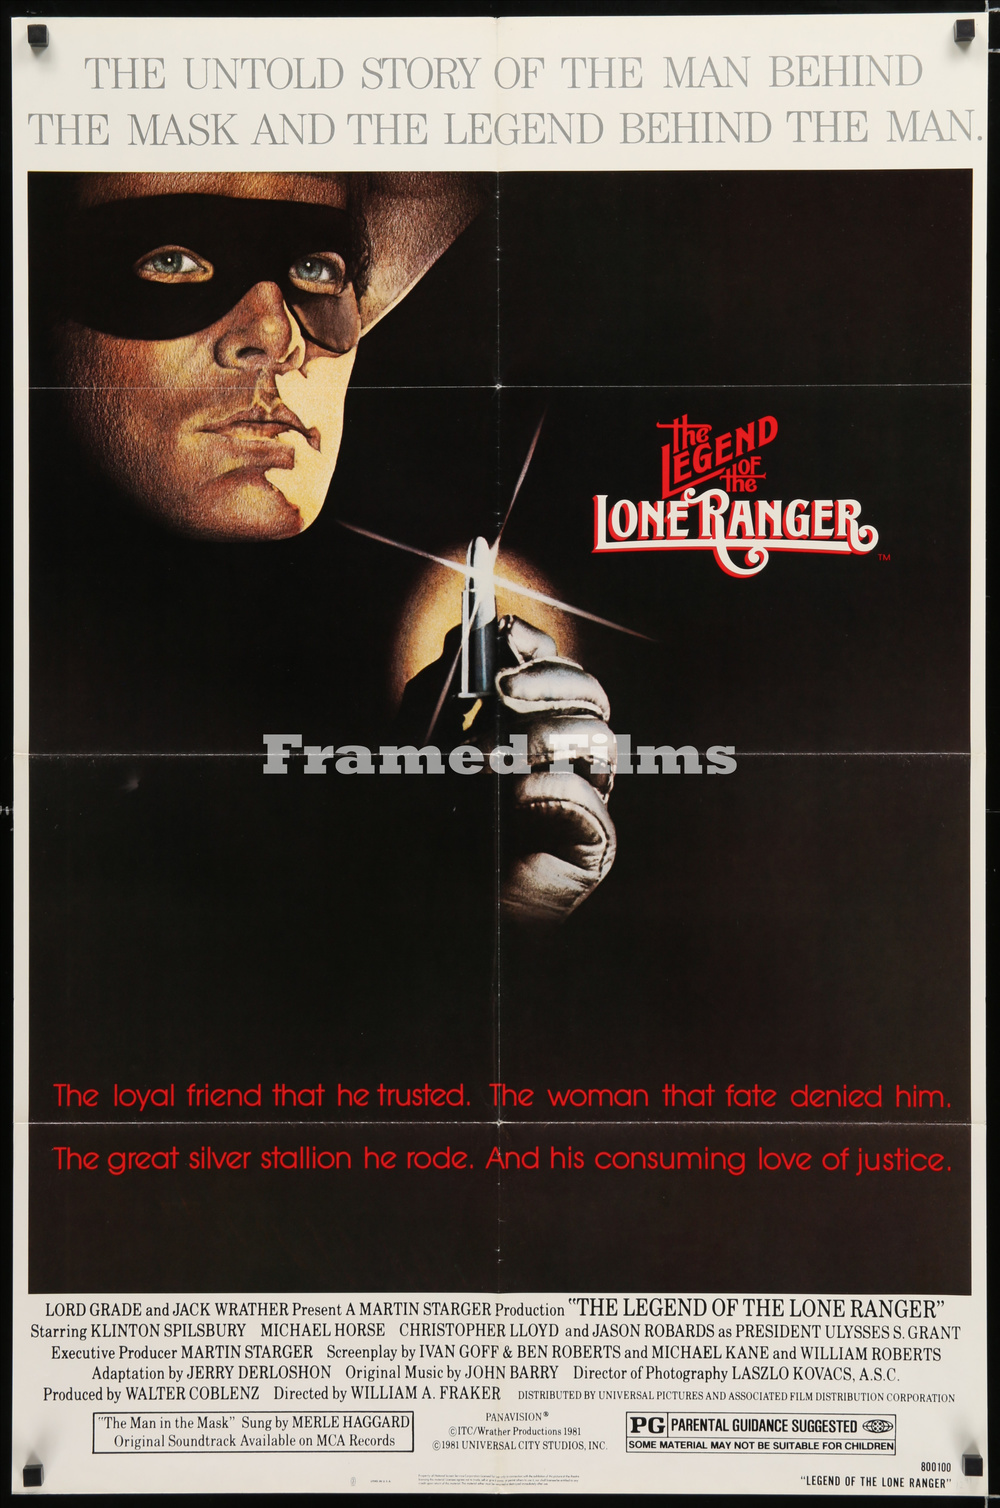 legend_of_the_lone_ranger_BM01179_C.jpg